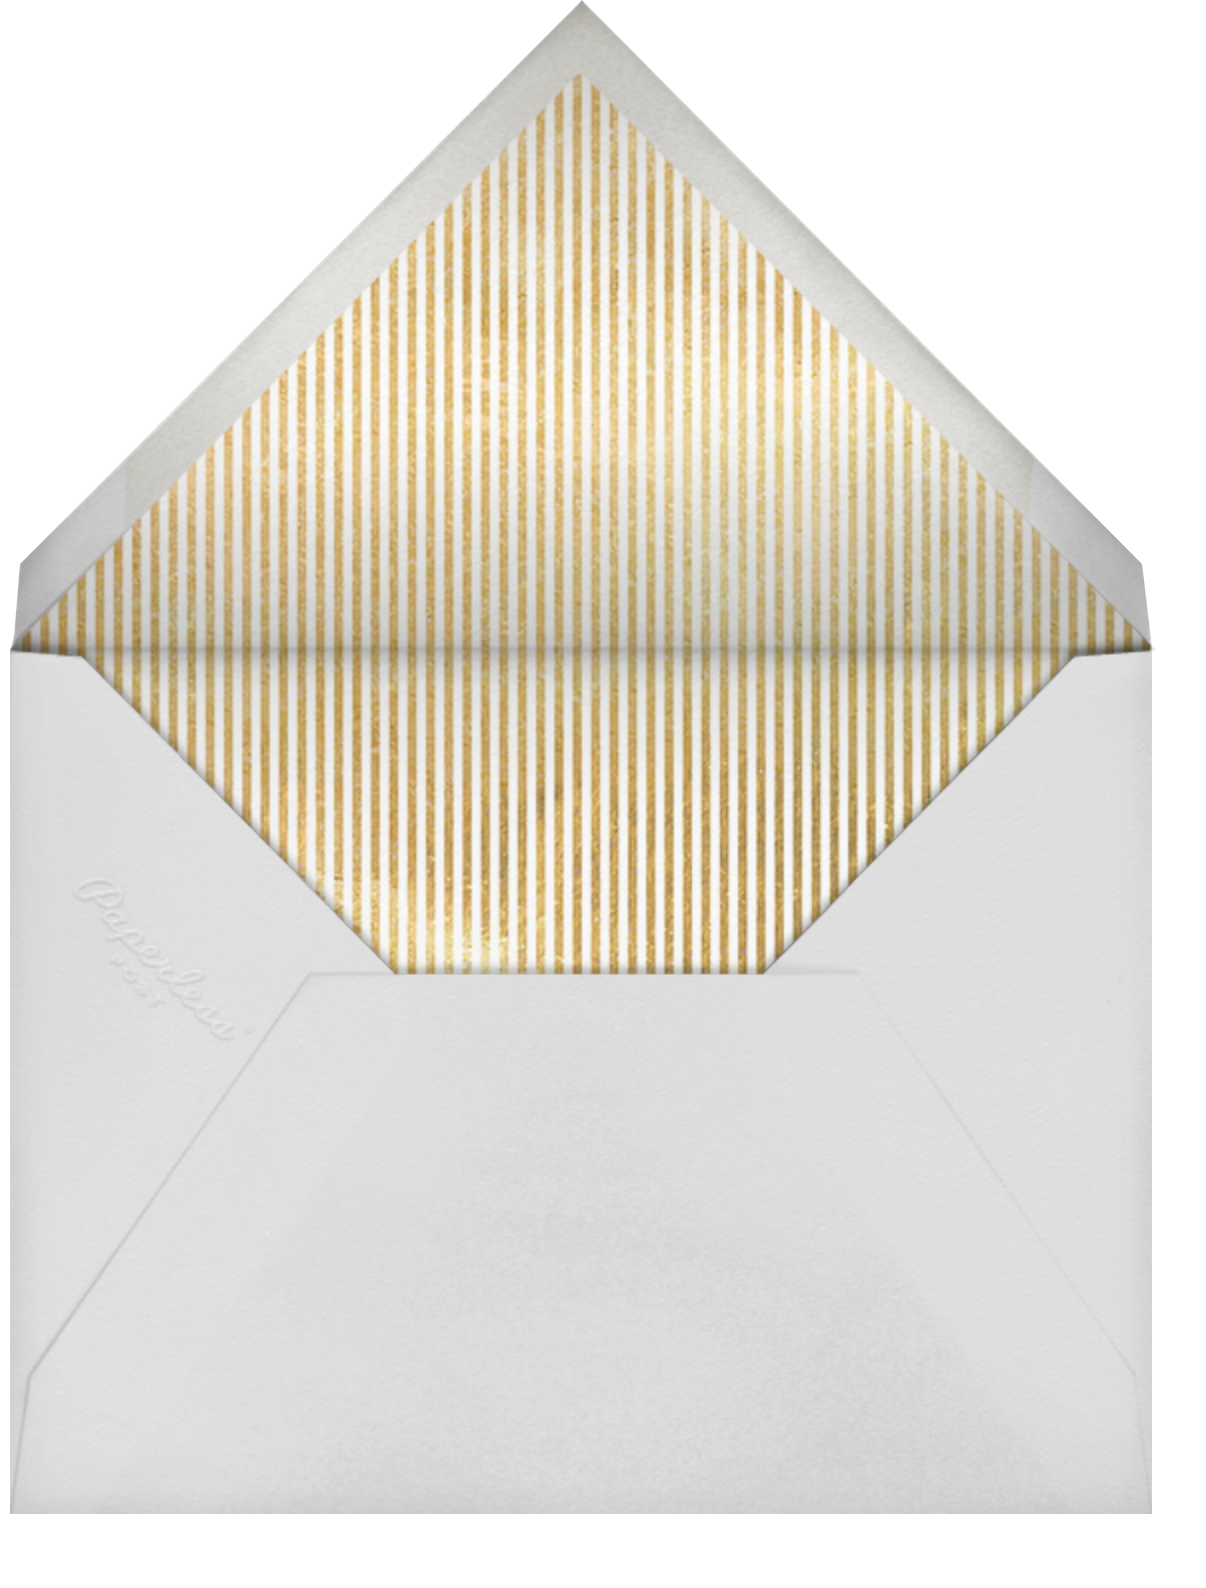 Swaying Fringe - Gold - Paperless Post - Dinner party - envelope back